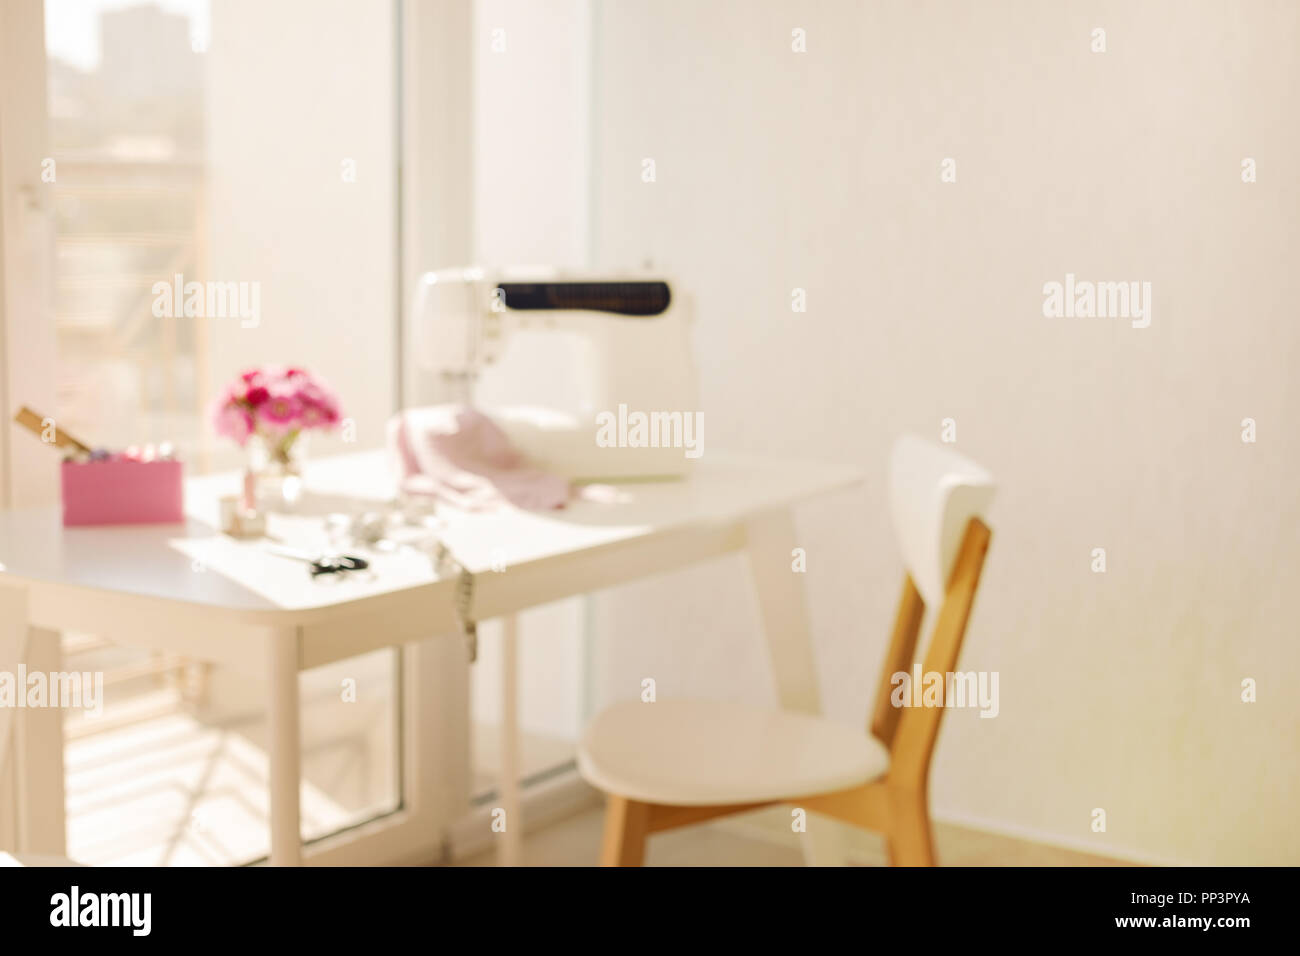 Workplace for sewing and needlework in a bright room with white furniture. Blurring effect and selective focus. - Stock Image